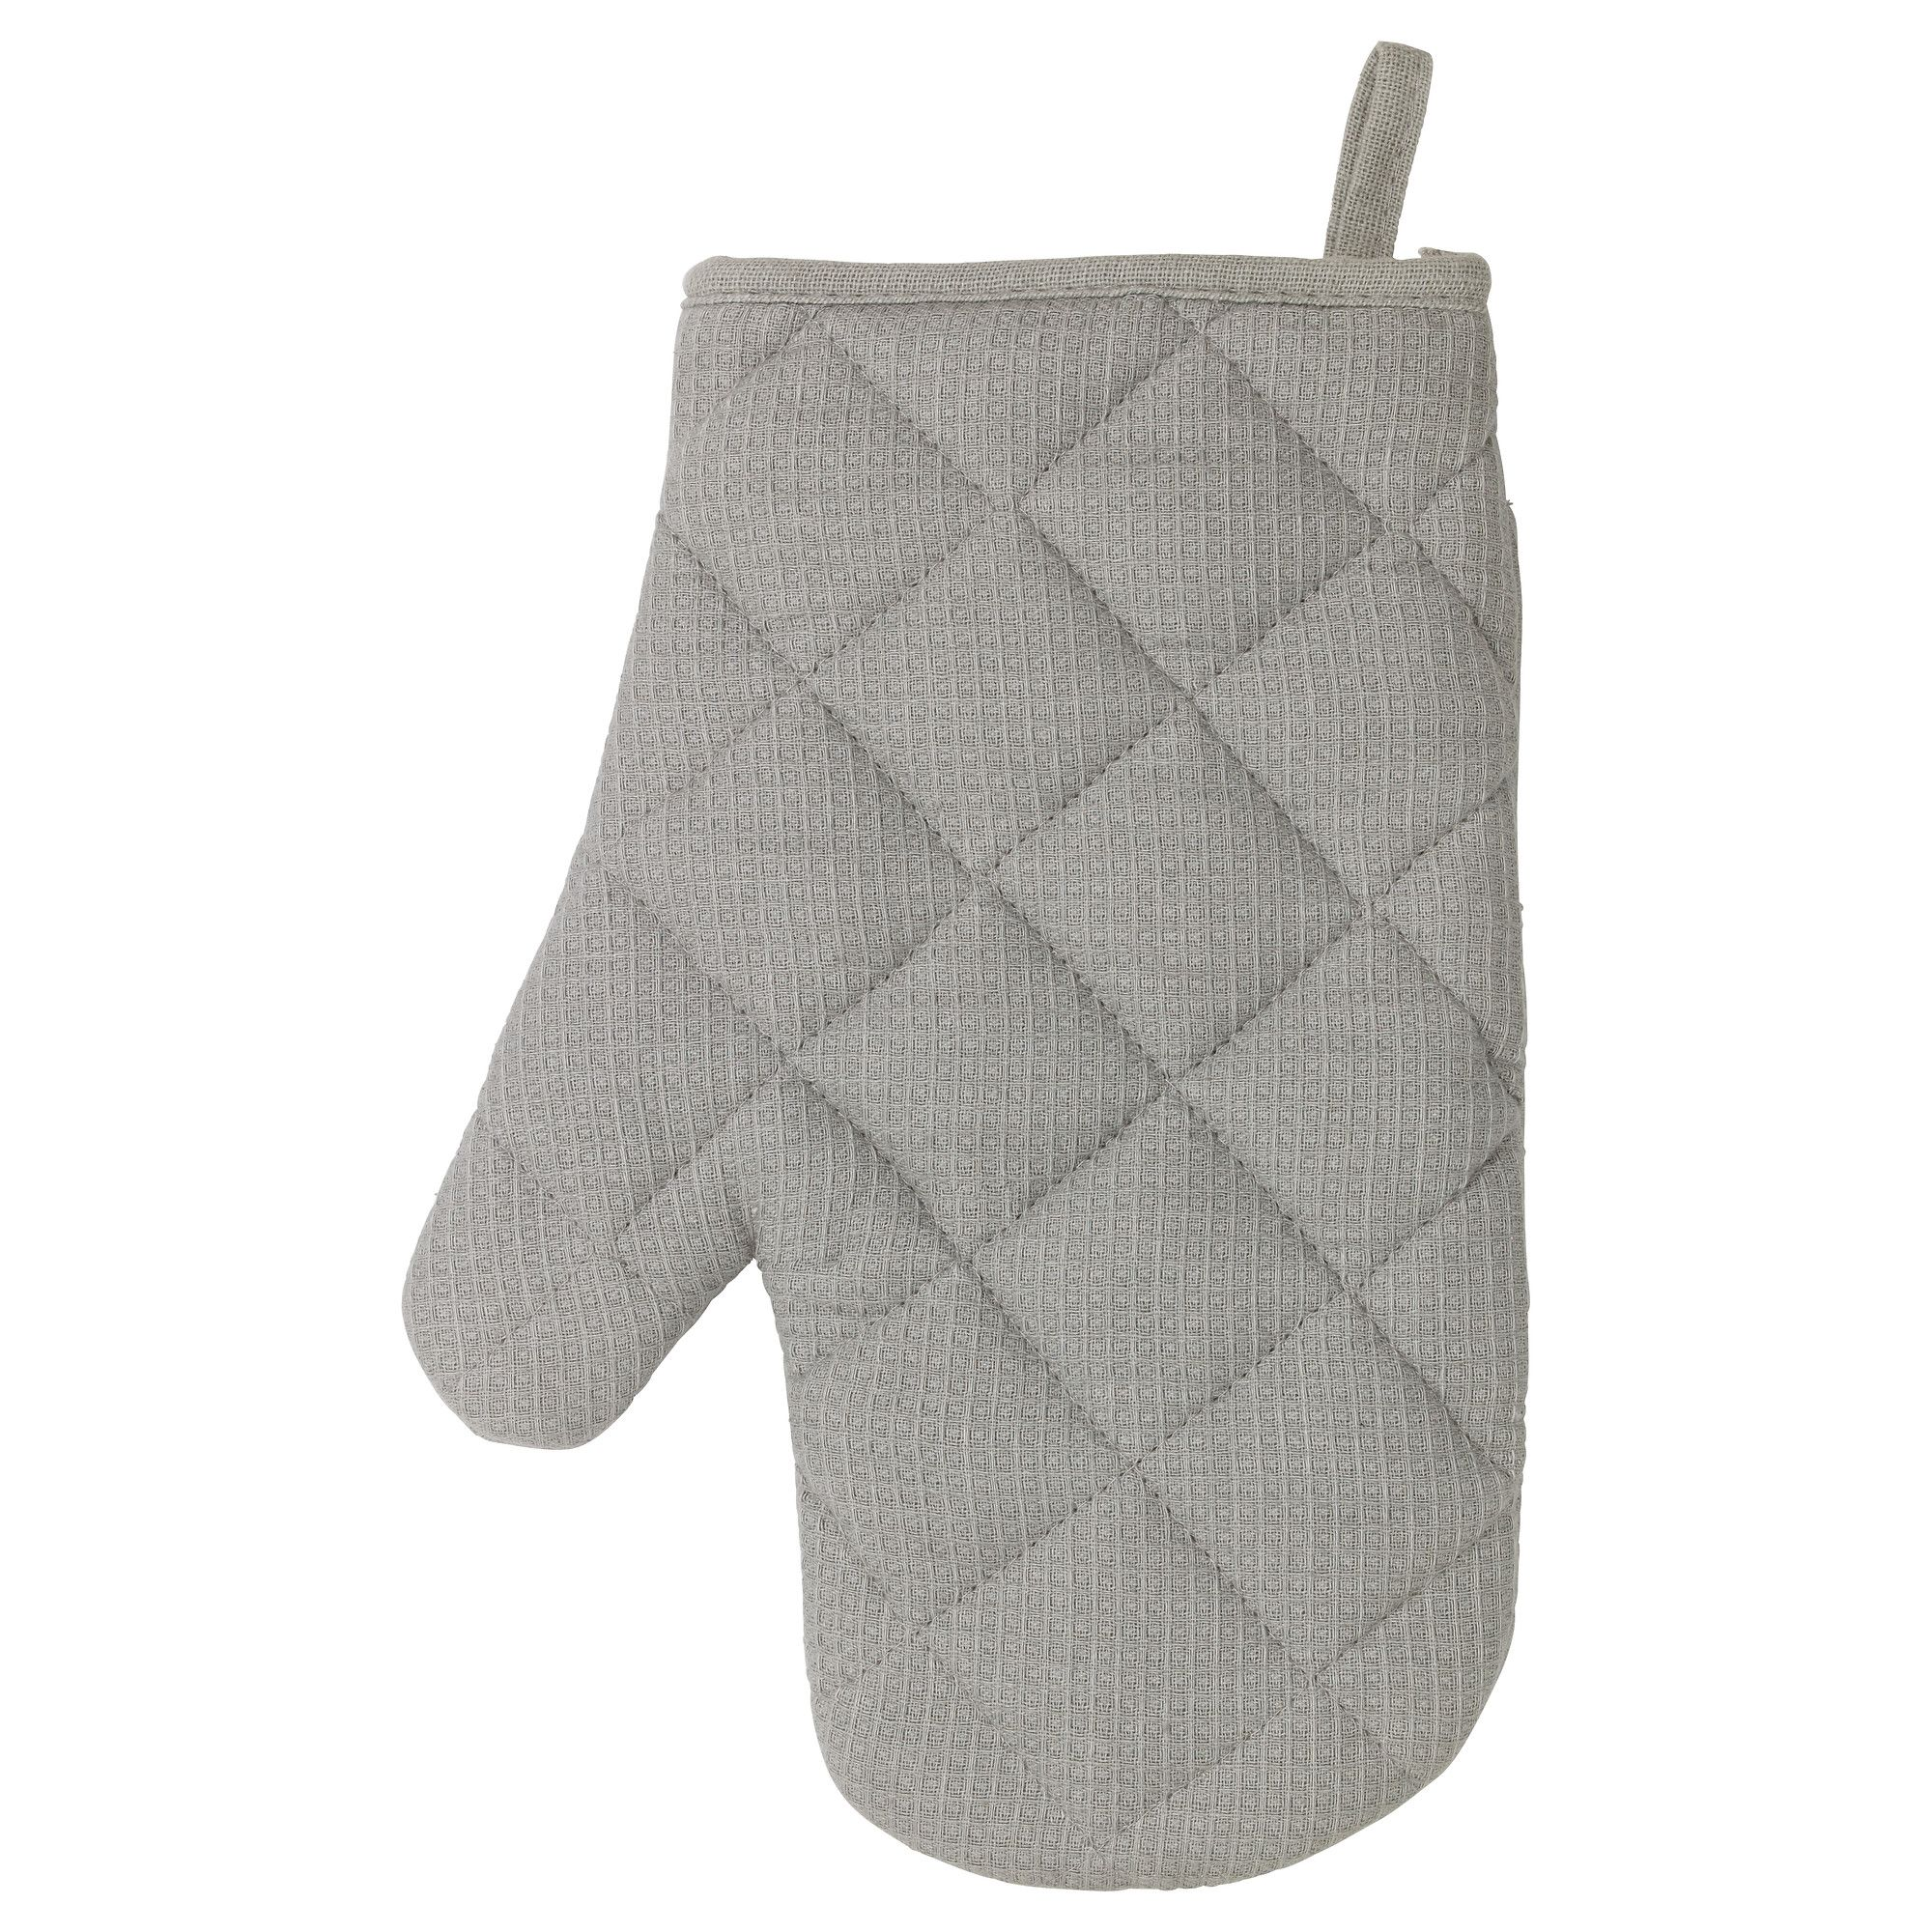 Iris Oven Mitt Gray  Oven Glove Soft Furnishings And Apartment Magnificent Kitchen Mittens Design Ideas